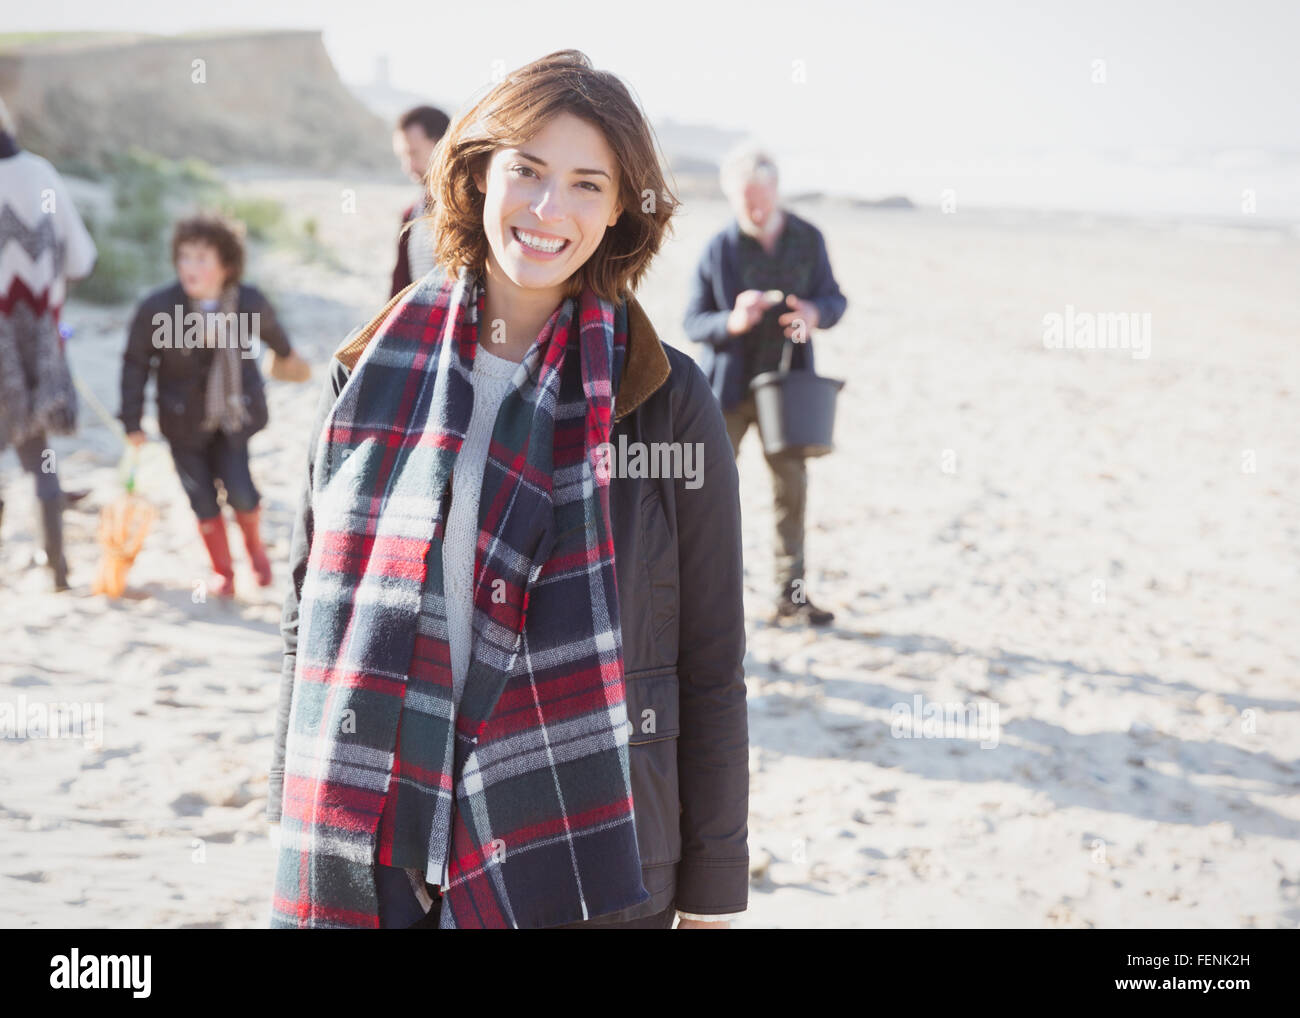 Portrait smiling woman in plaid scarf with family on beach - Stock Image